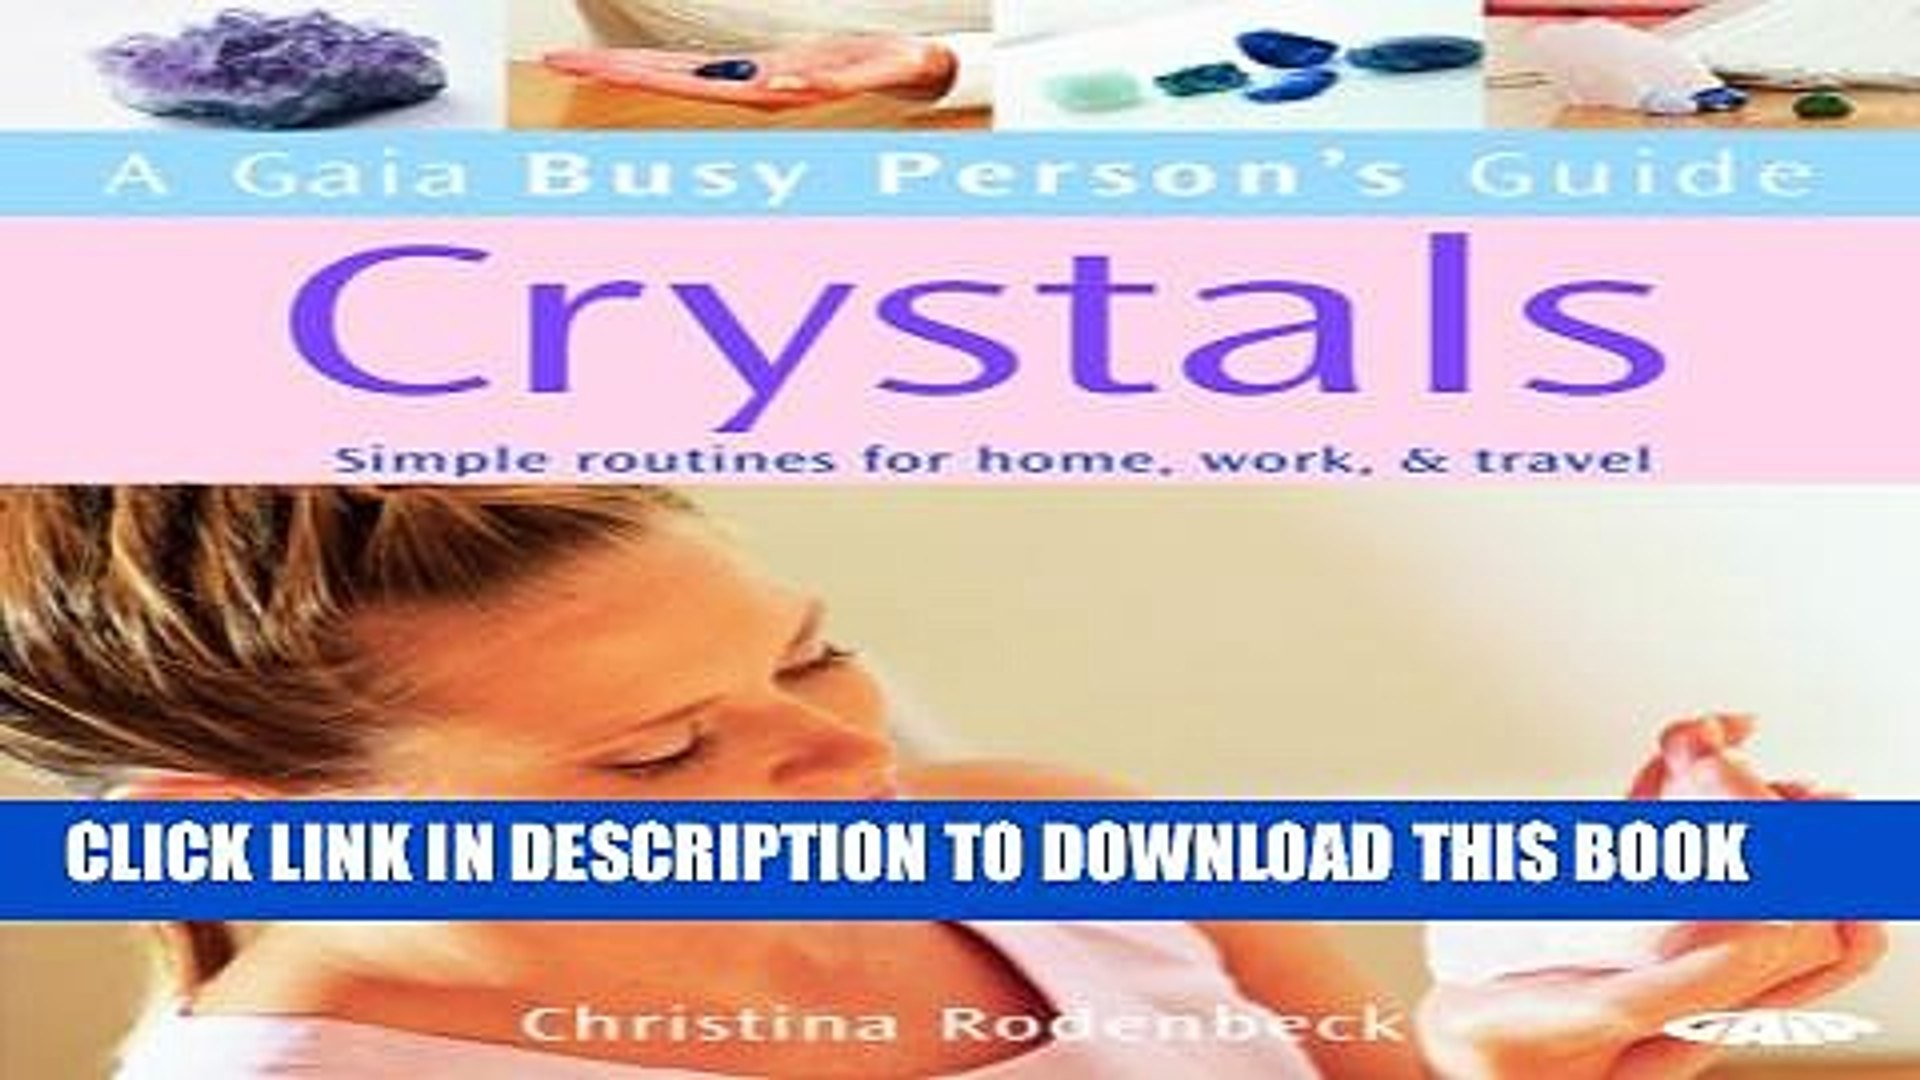 Work Gaia Busy Persons Guide to Crystals /& Travel Simple Routines for Home